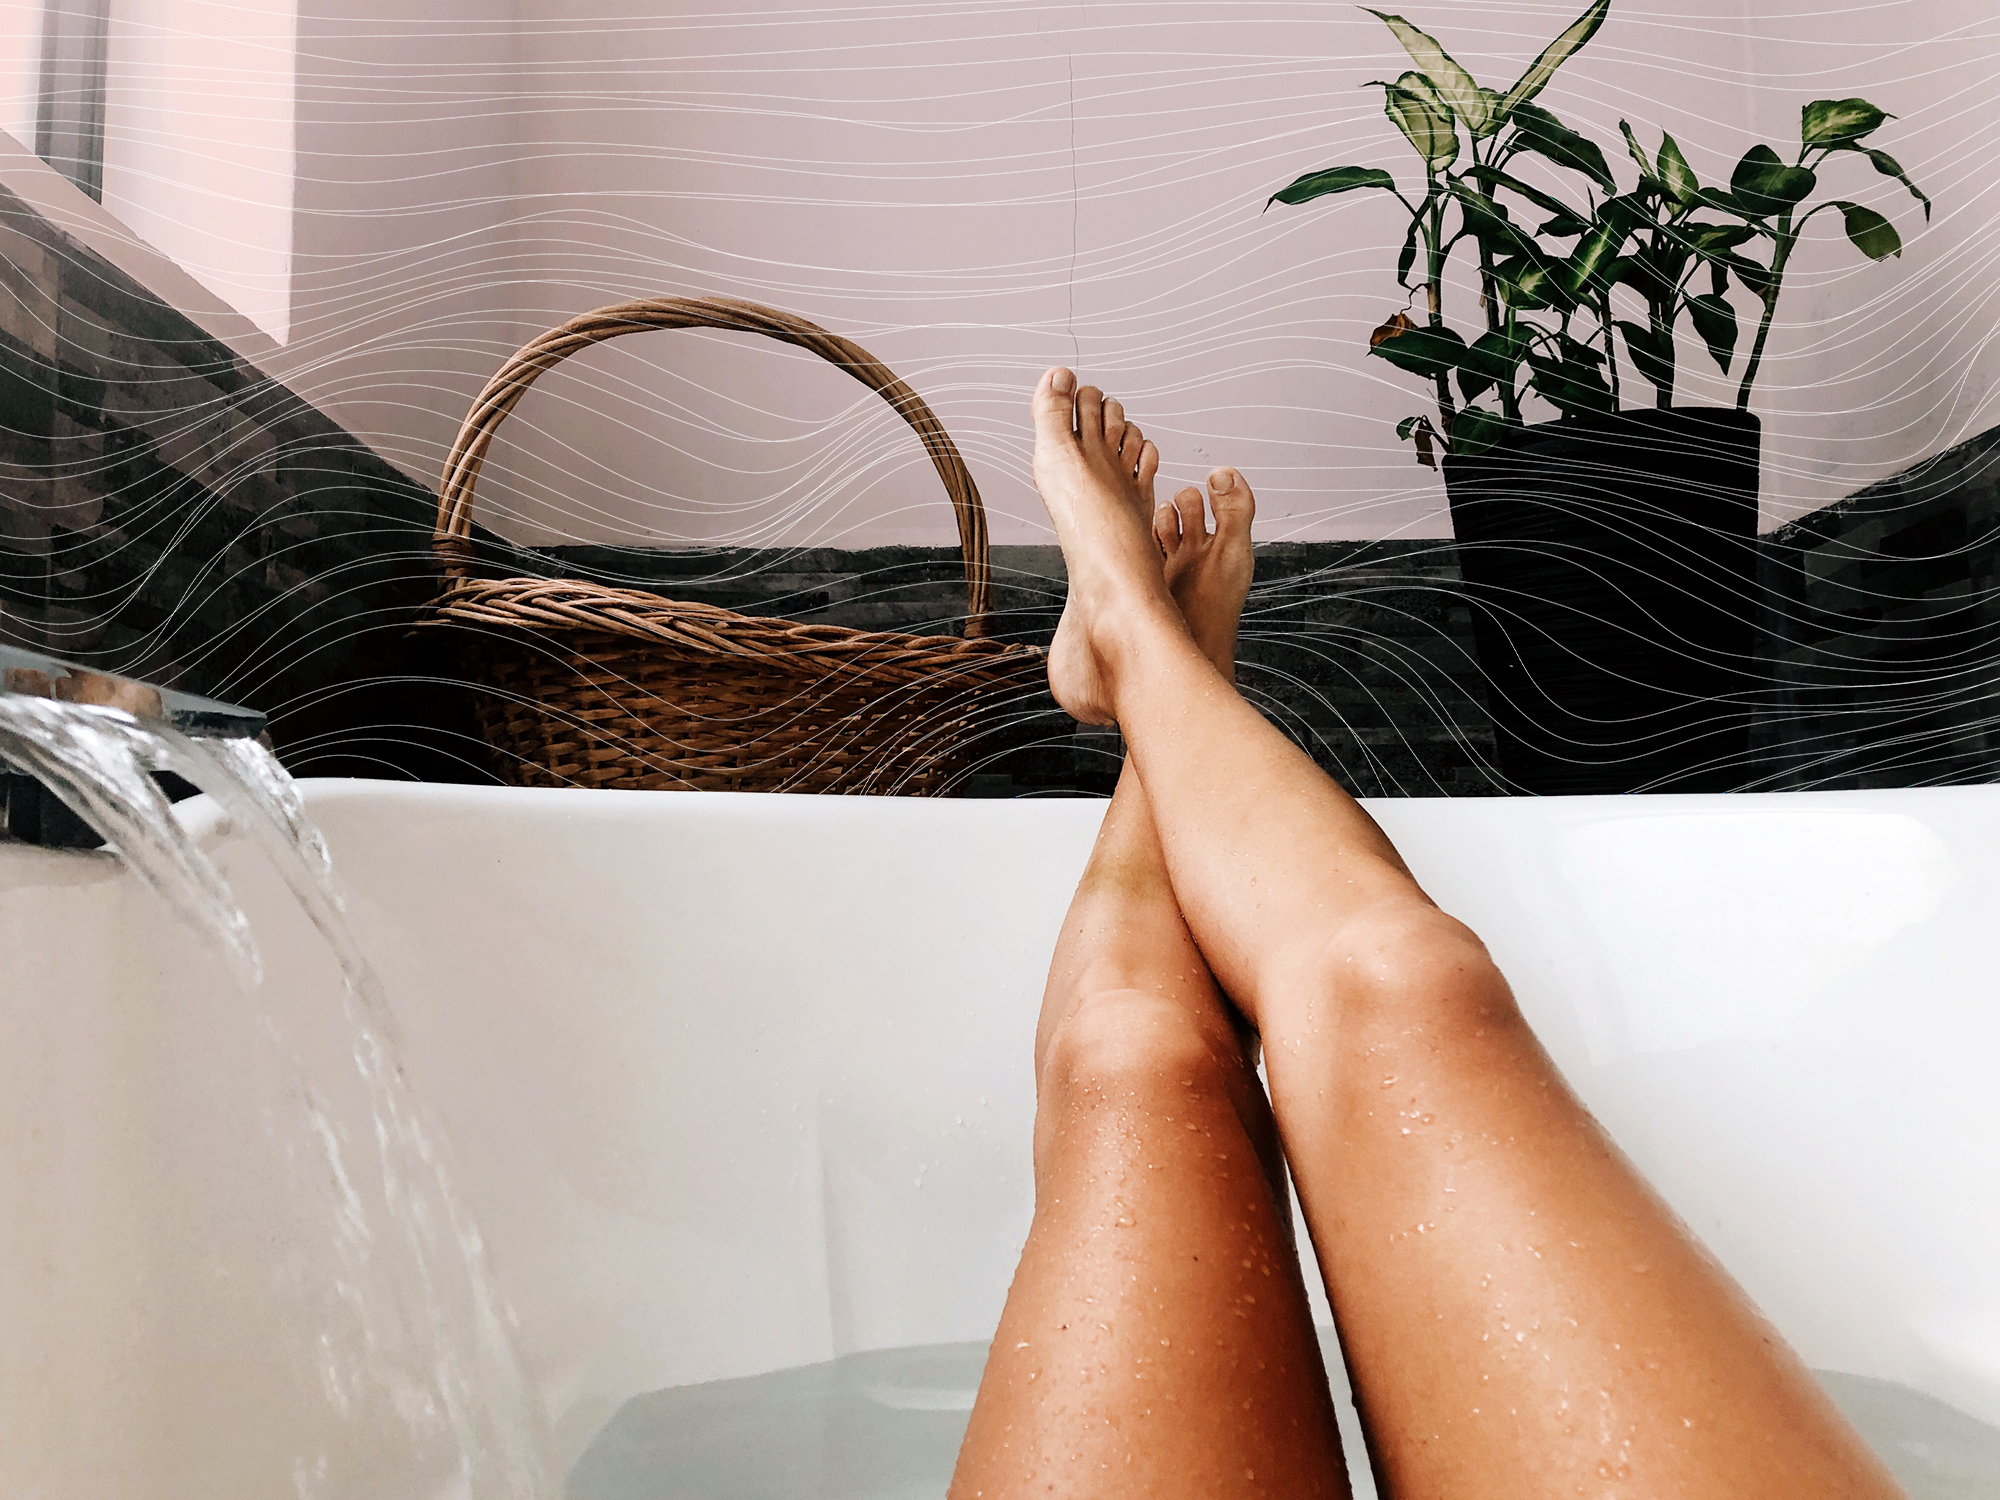 Woman Relaxing At Home In The Bathtub